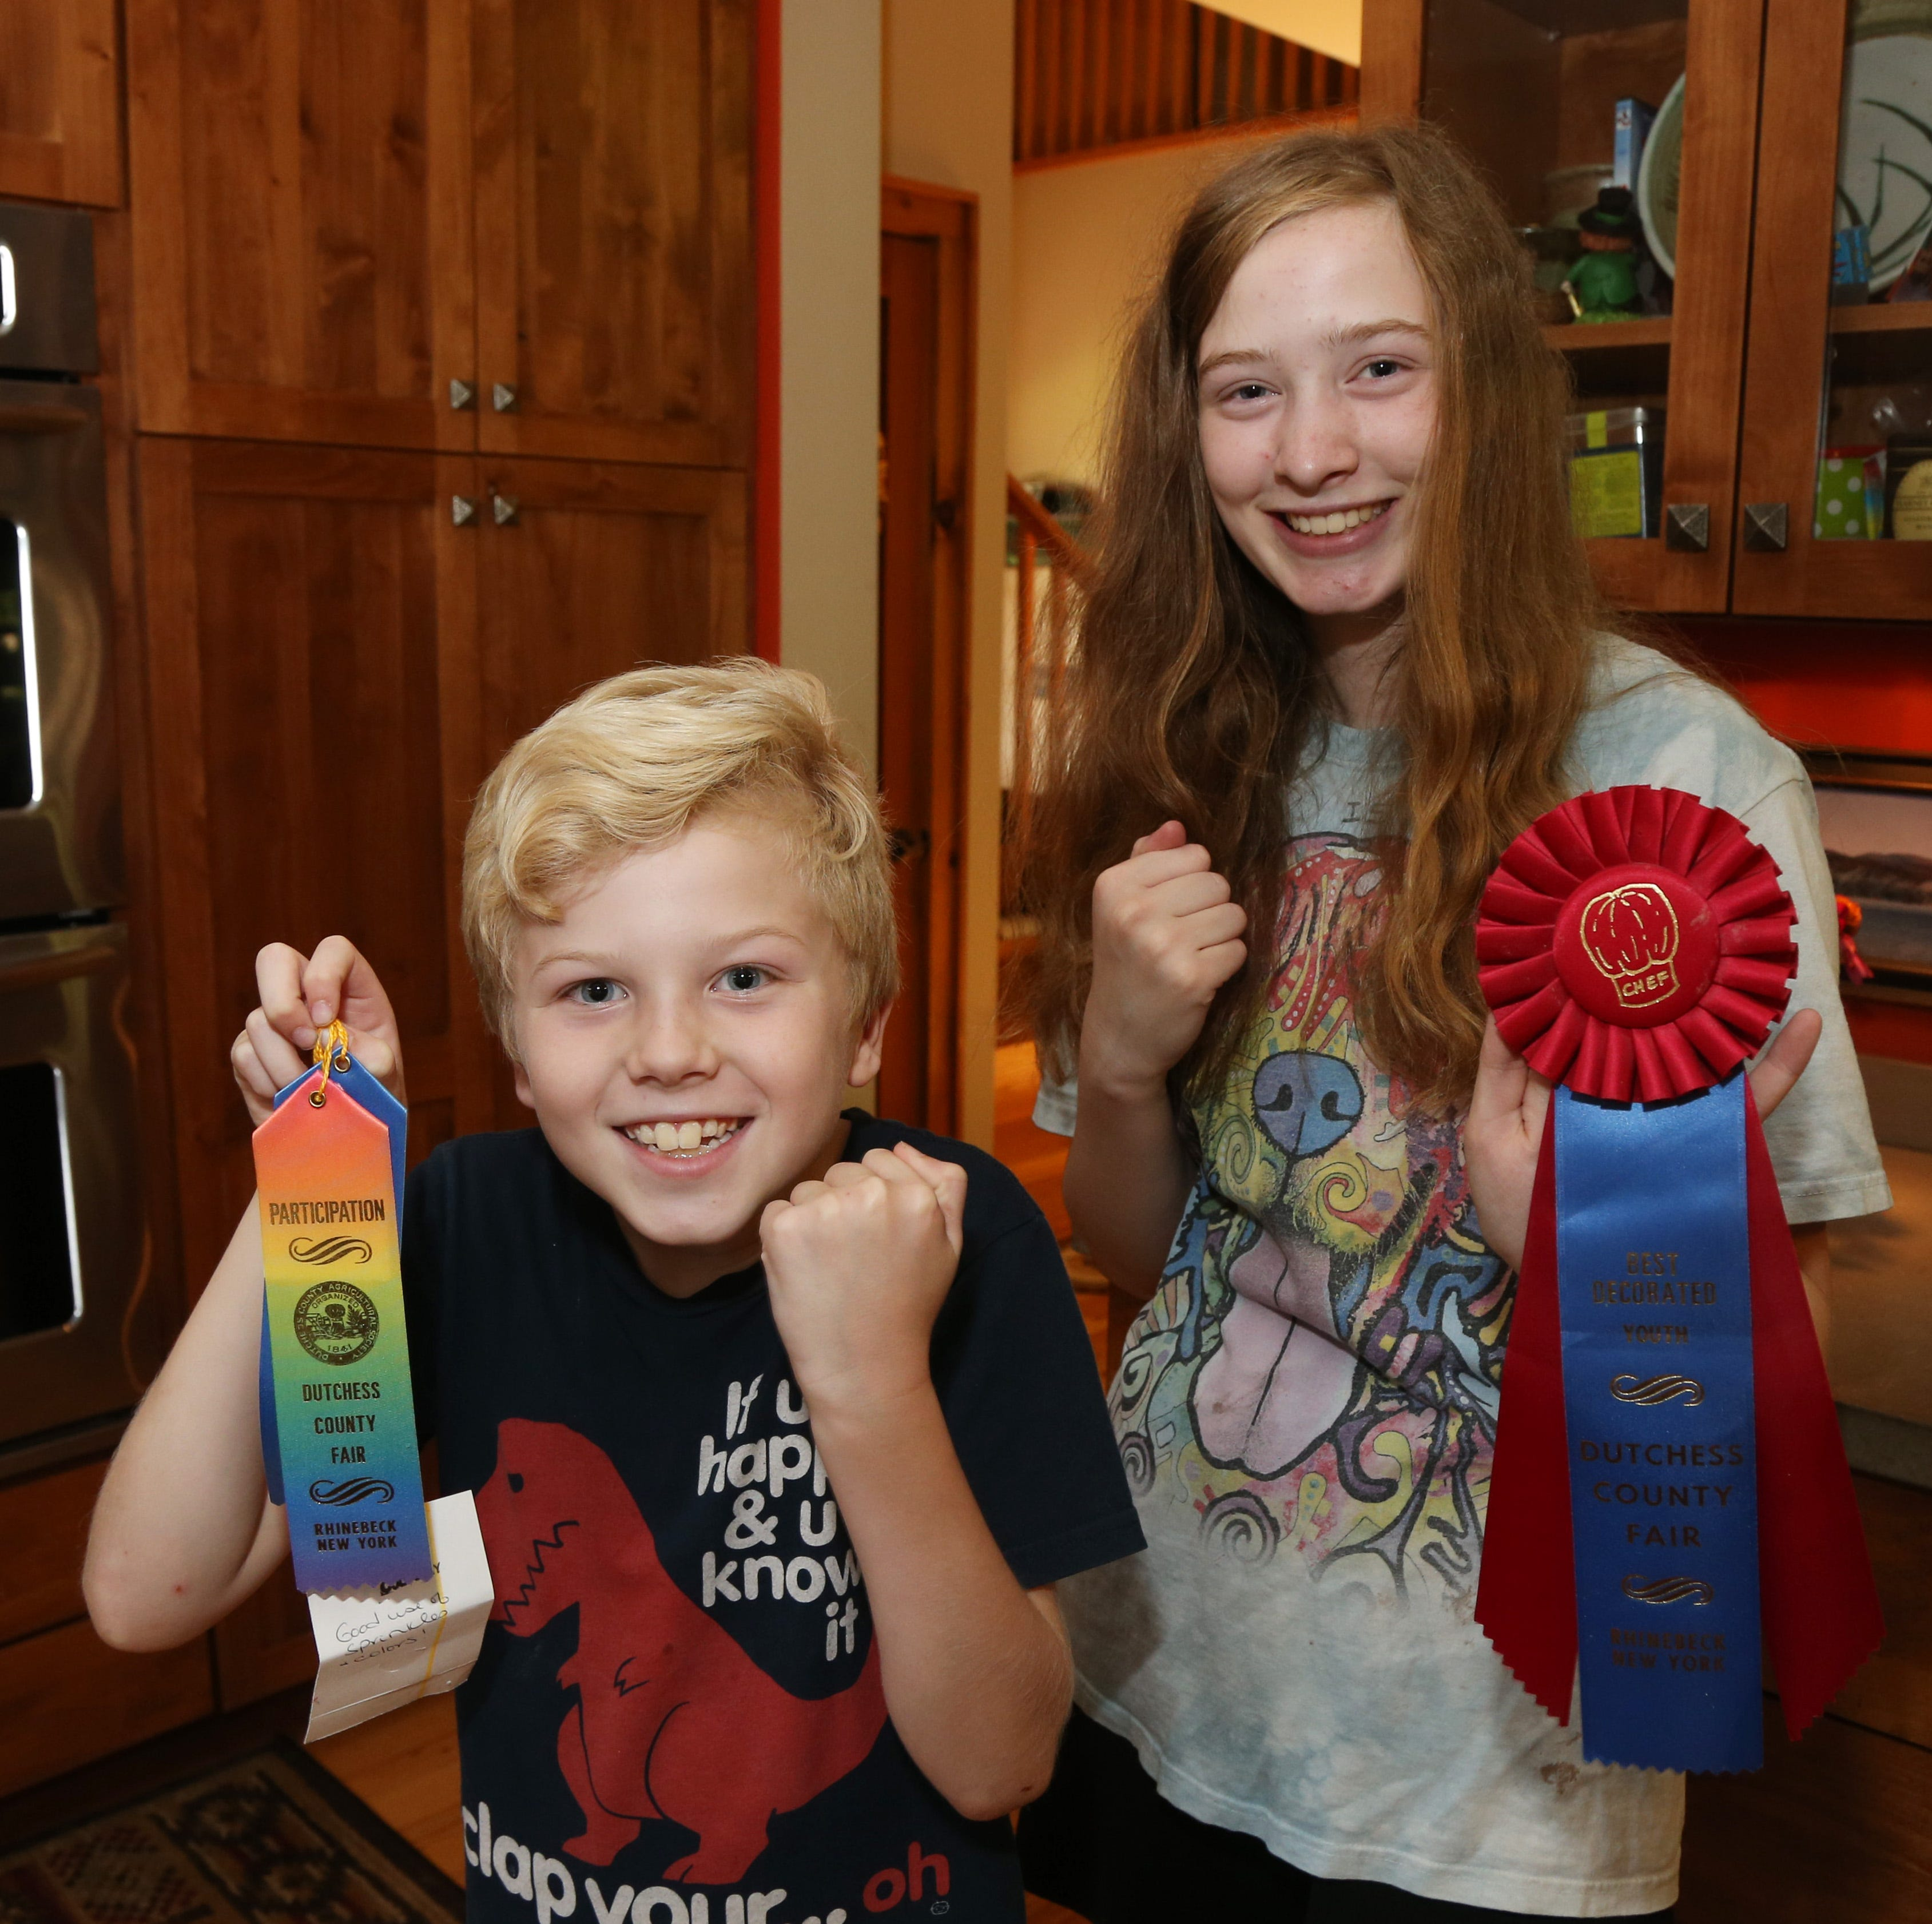 Dutchess County Fair culinarians take pride in blue-ribbon recipes, tradition